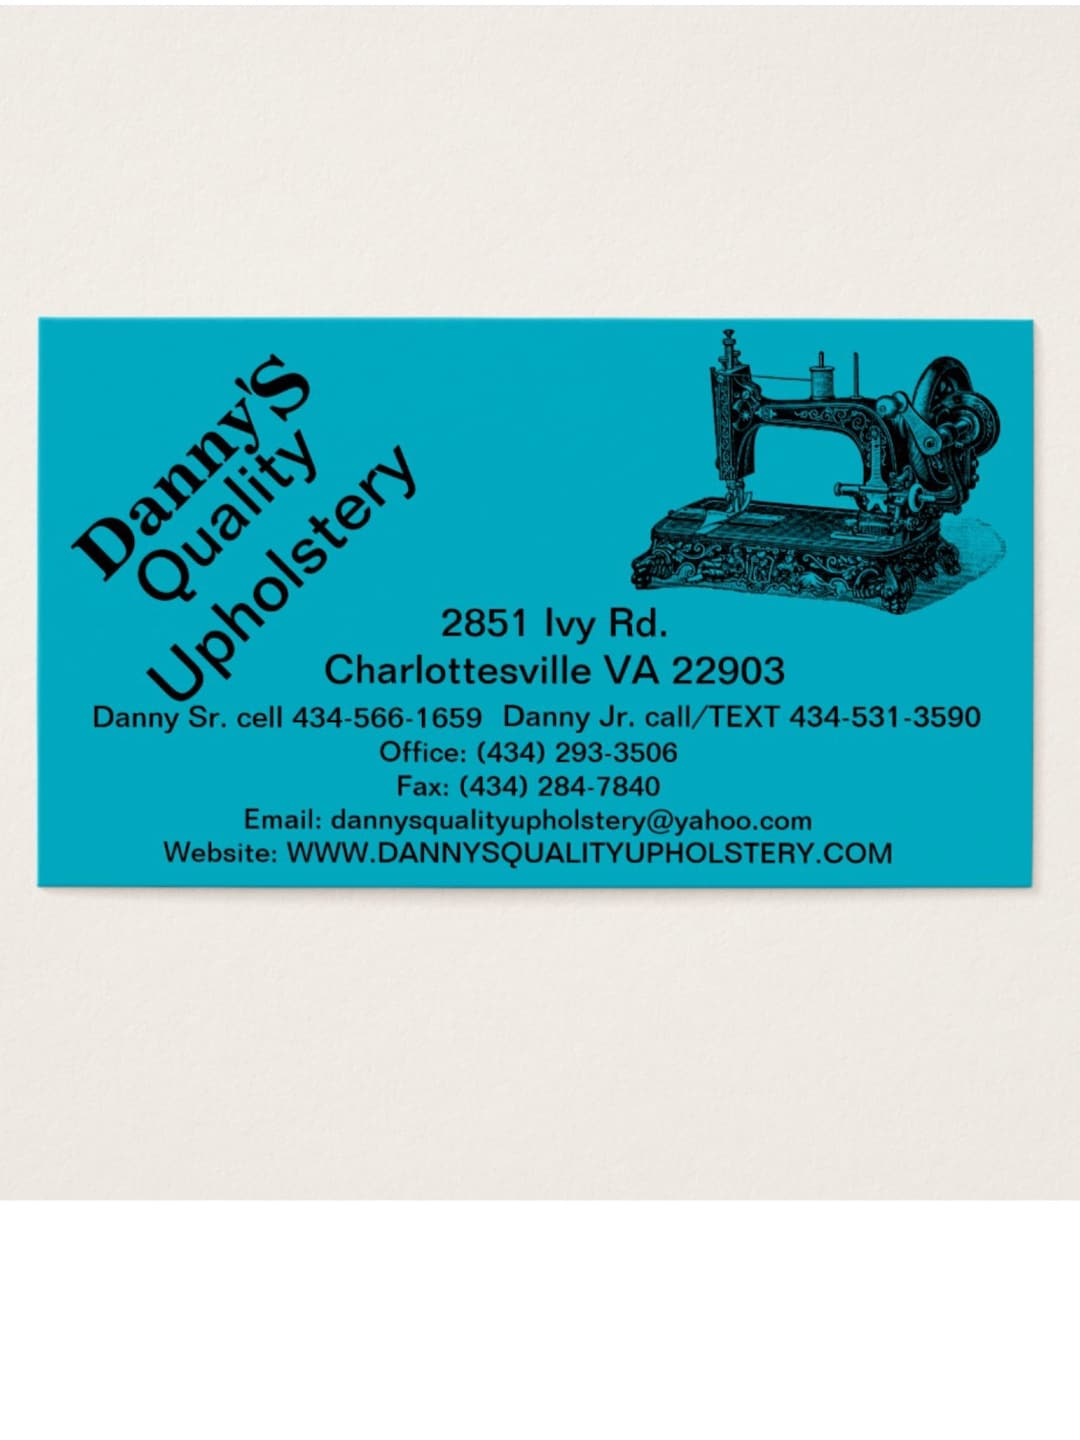 Danny's Quality Upholstery